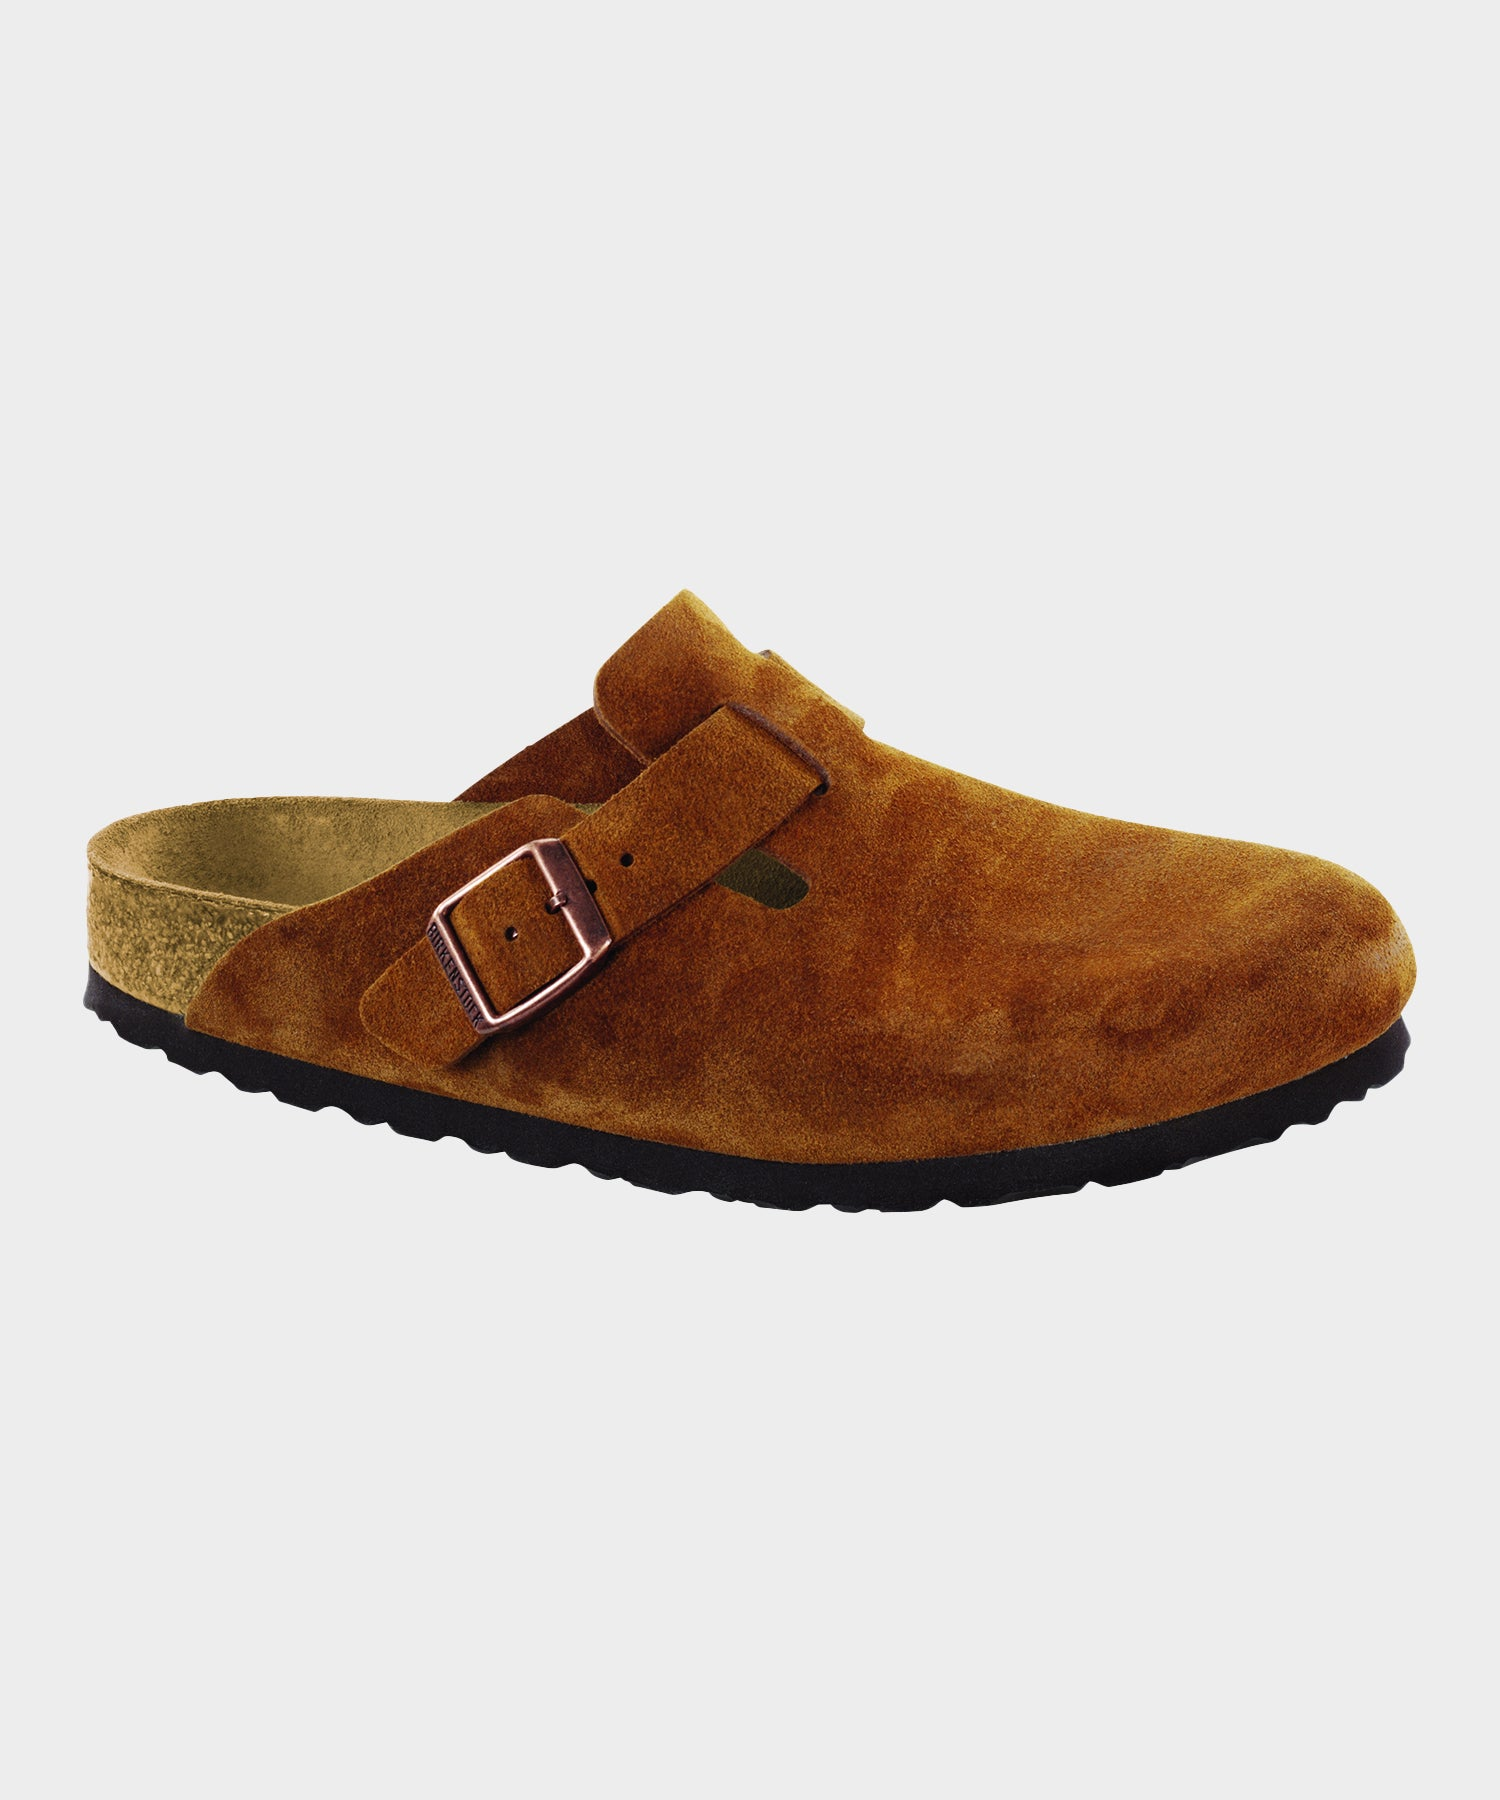 Birkenstock Boston Suede Soft Footbed in Mink